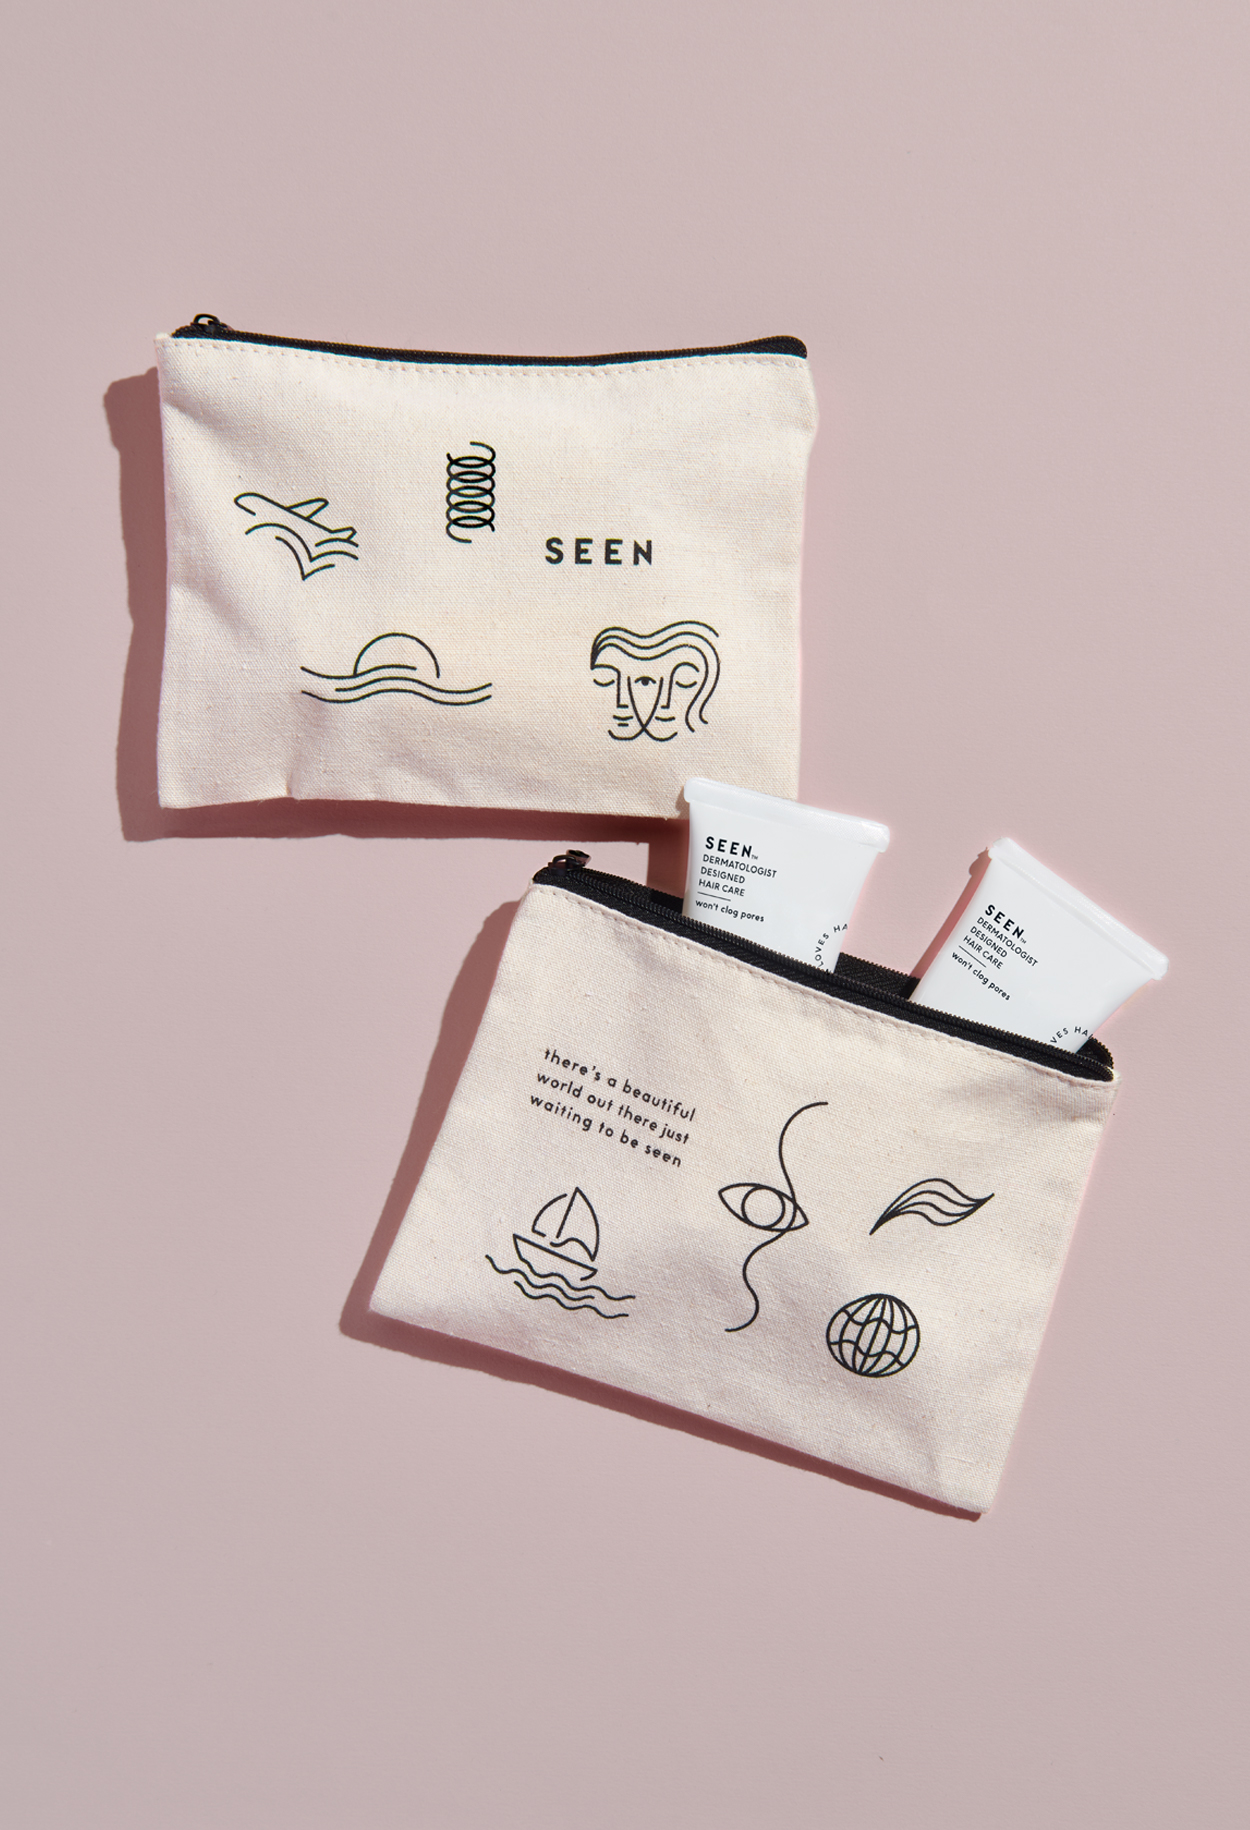 SEEN travel kit designed and illustrated by Abby Haddican at Werner Design Werks